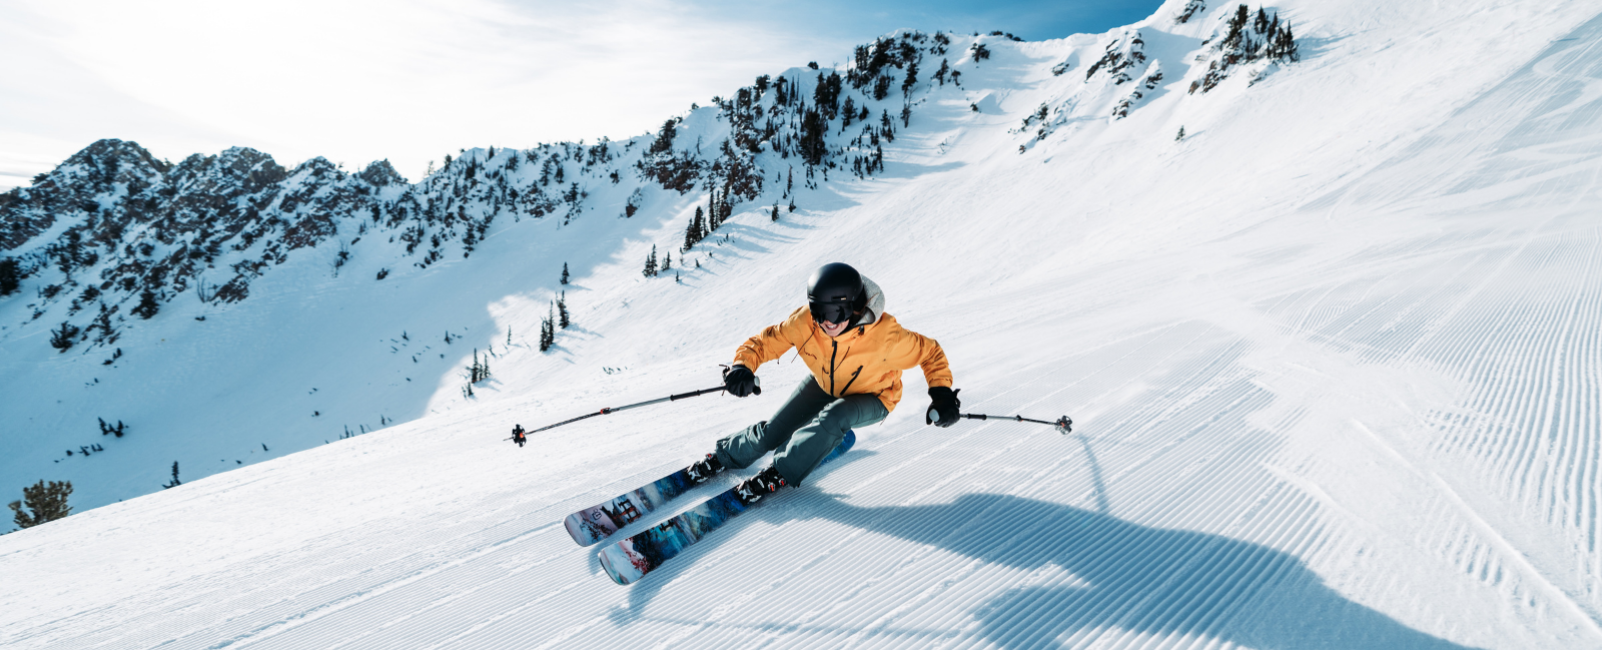 Discover Snowbasin: More to Access